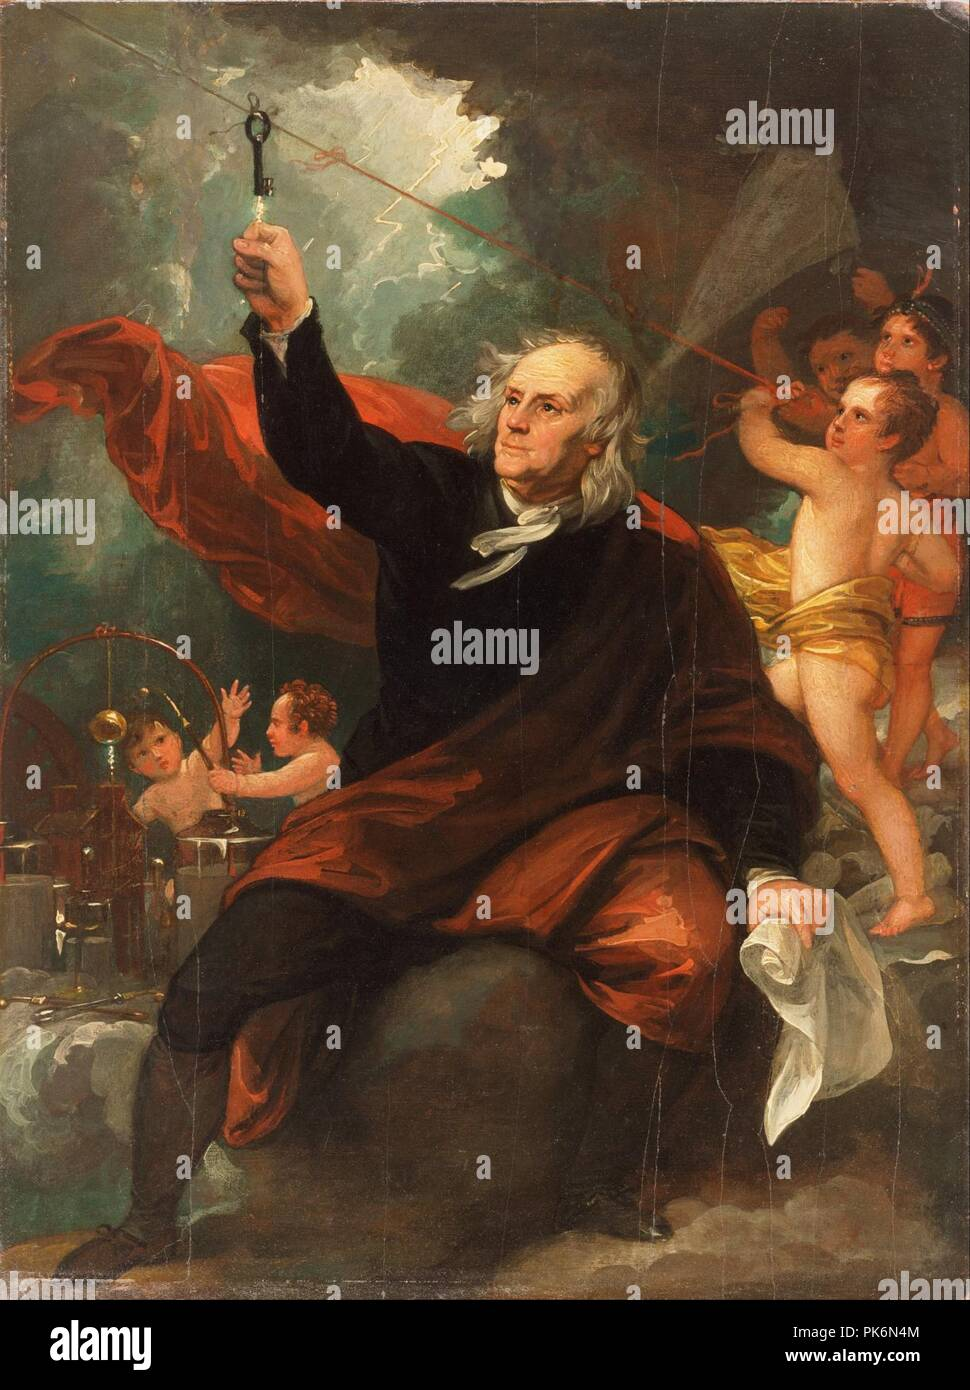 Benjamin West, English (born America) - Benjamin Franklin Drawing Electricity from the Sky - Stock Photo